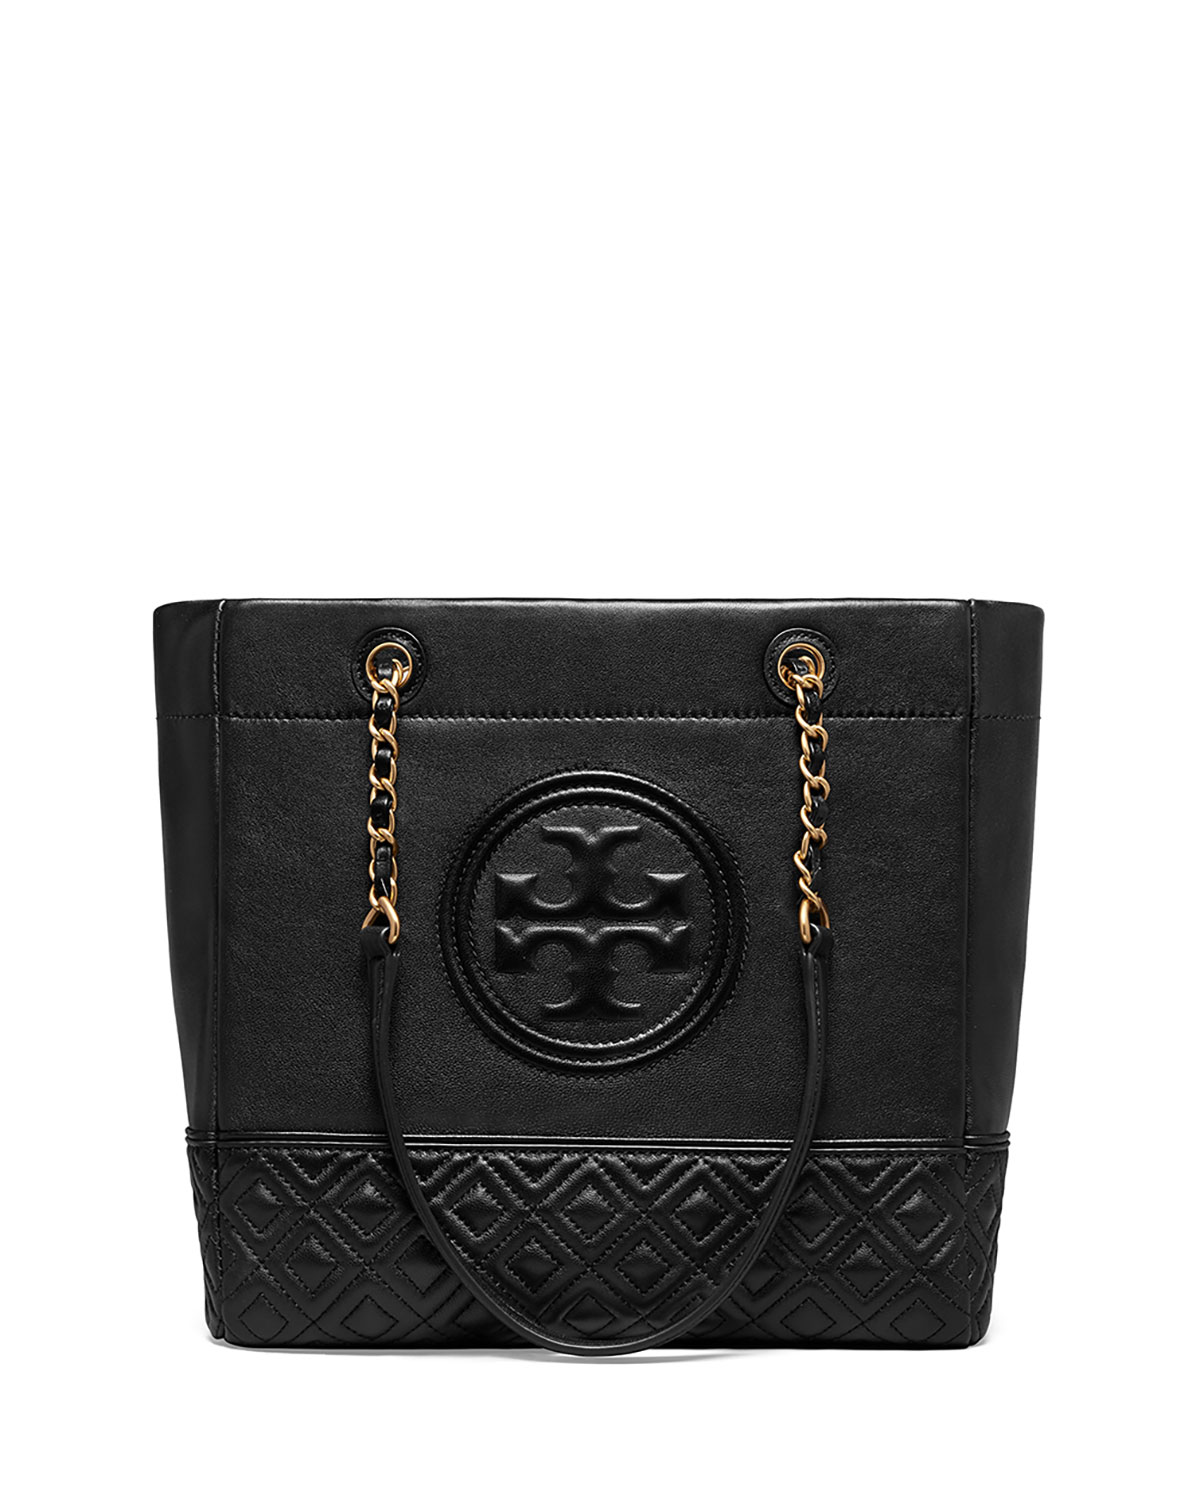 ce54becfe1a Tory Burch Fleming Chain-Handle Leather Tote Bag | Neiman Marcus